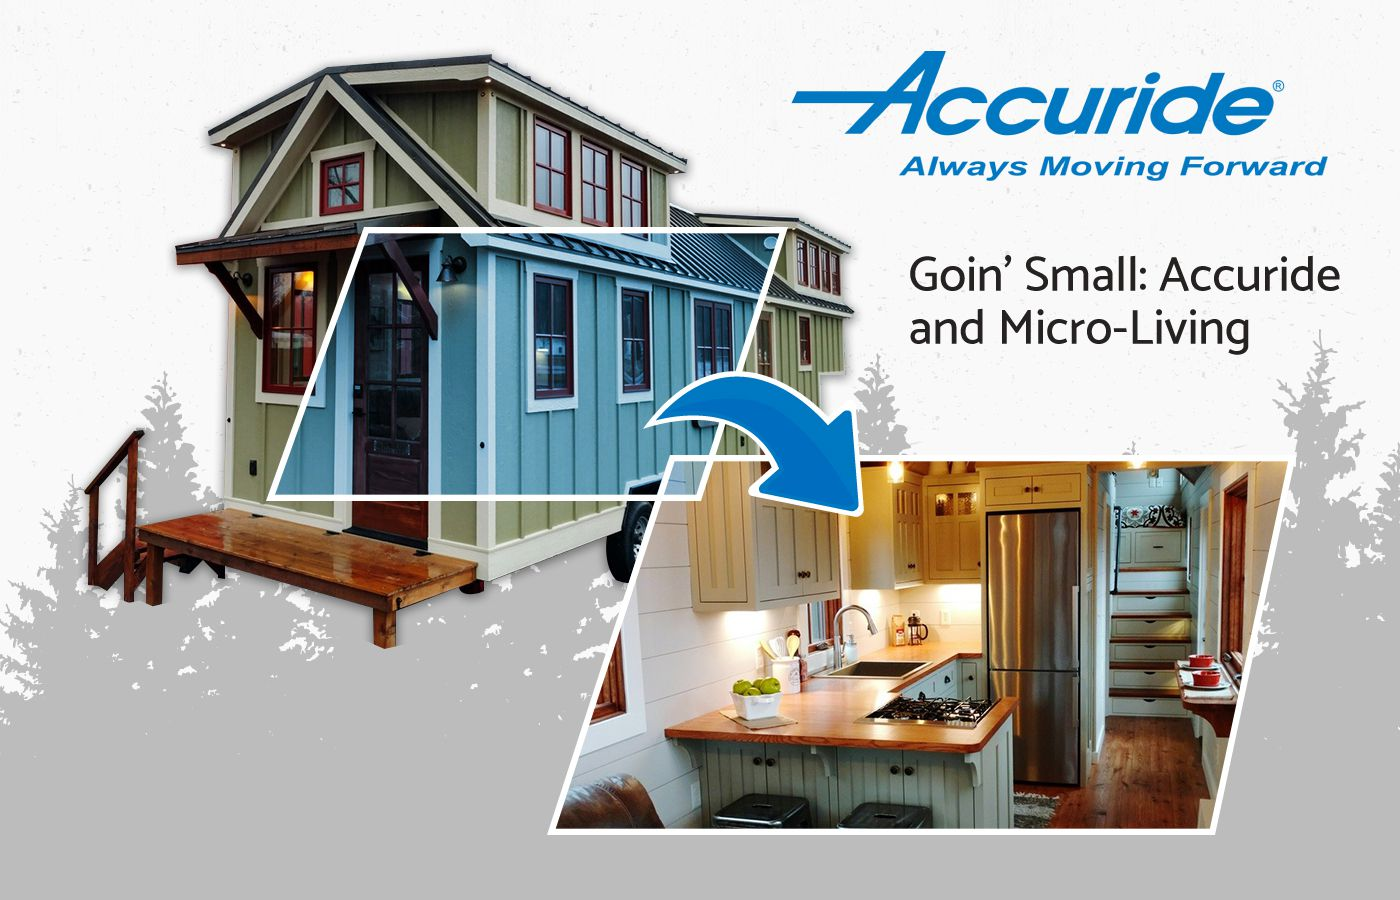 accuride drawer slides improving life in tiny houses - Micro living